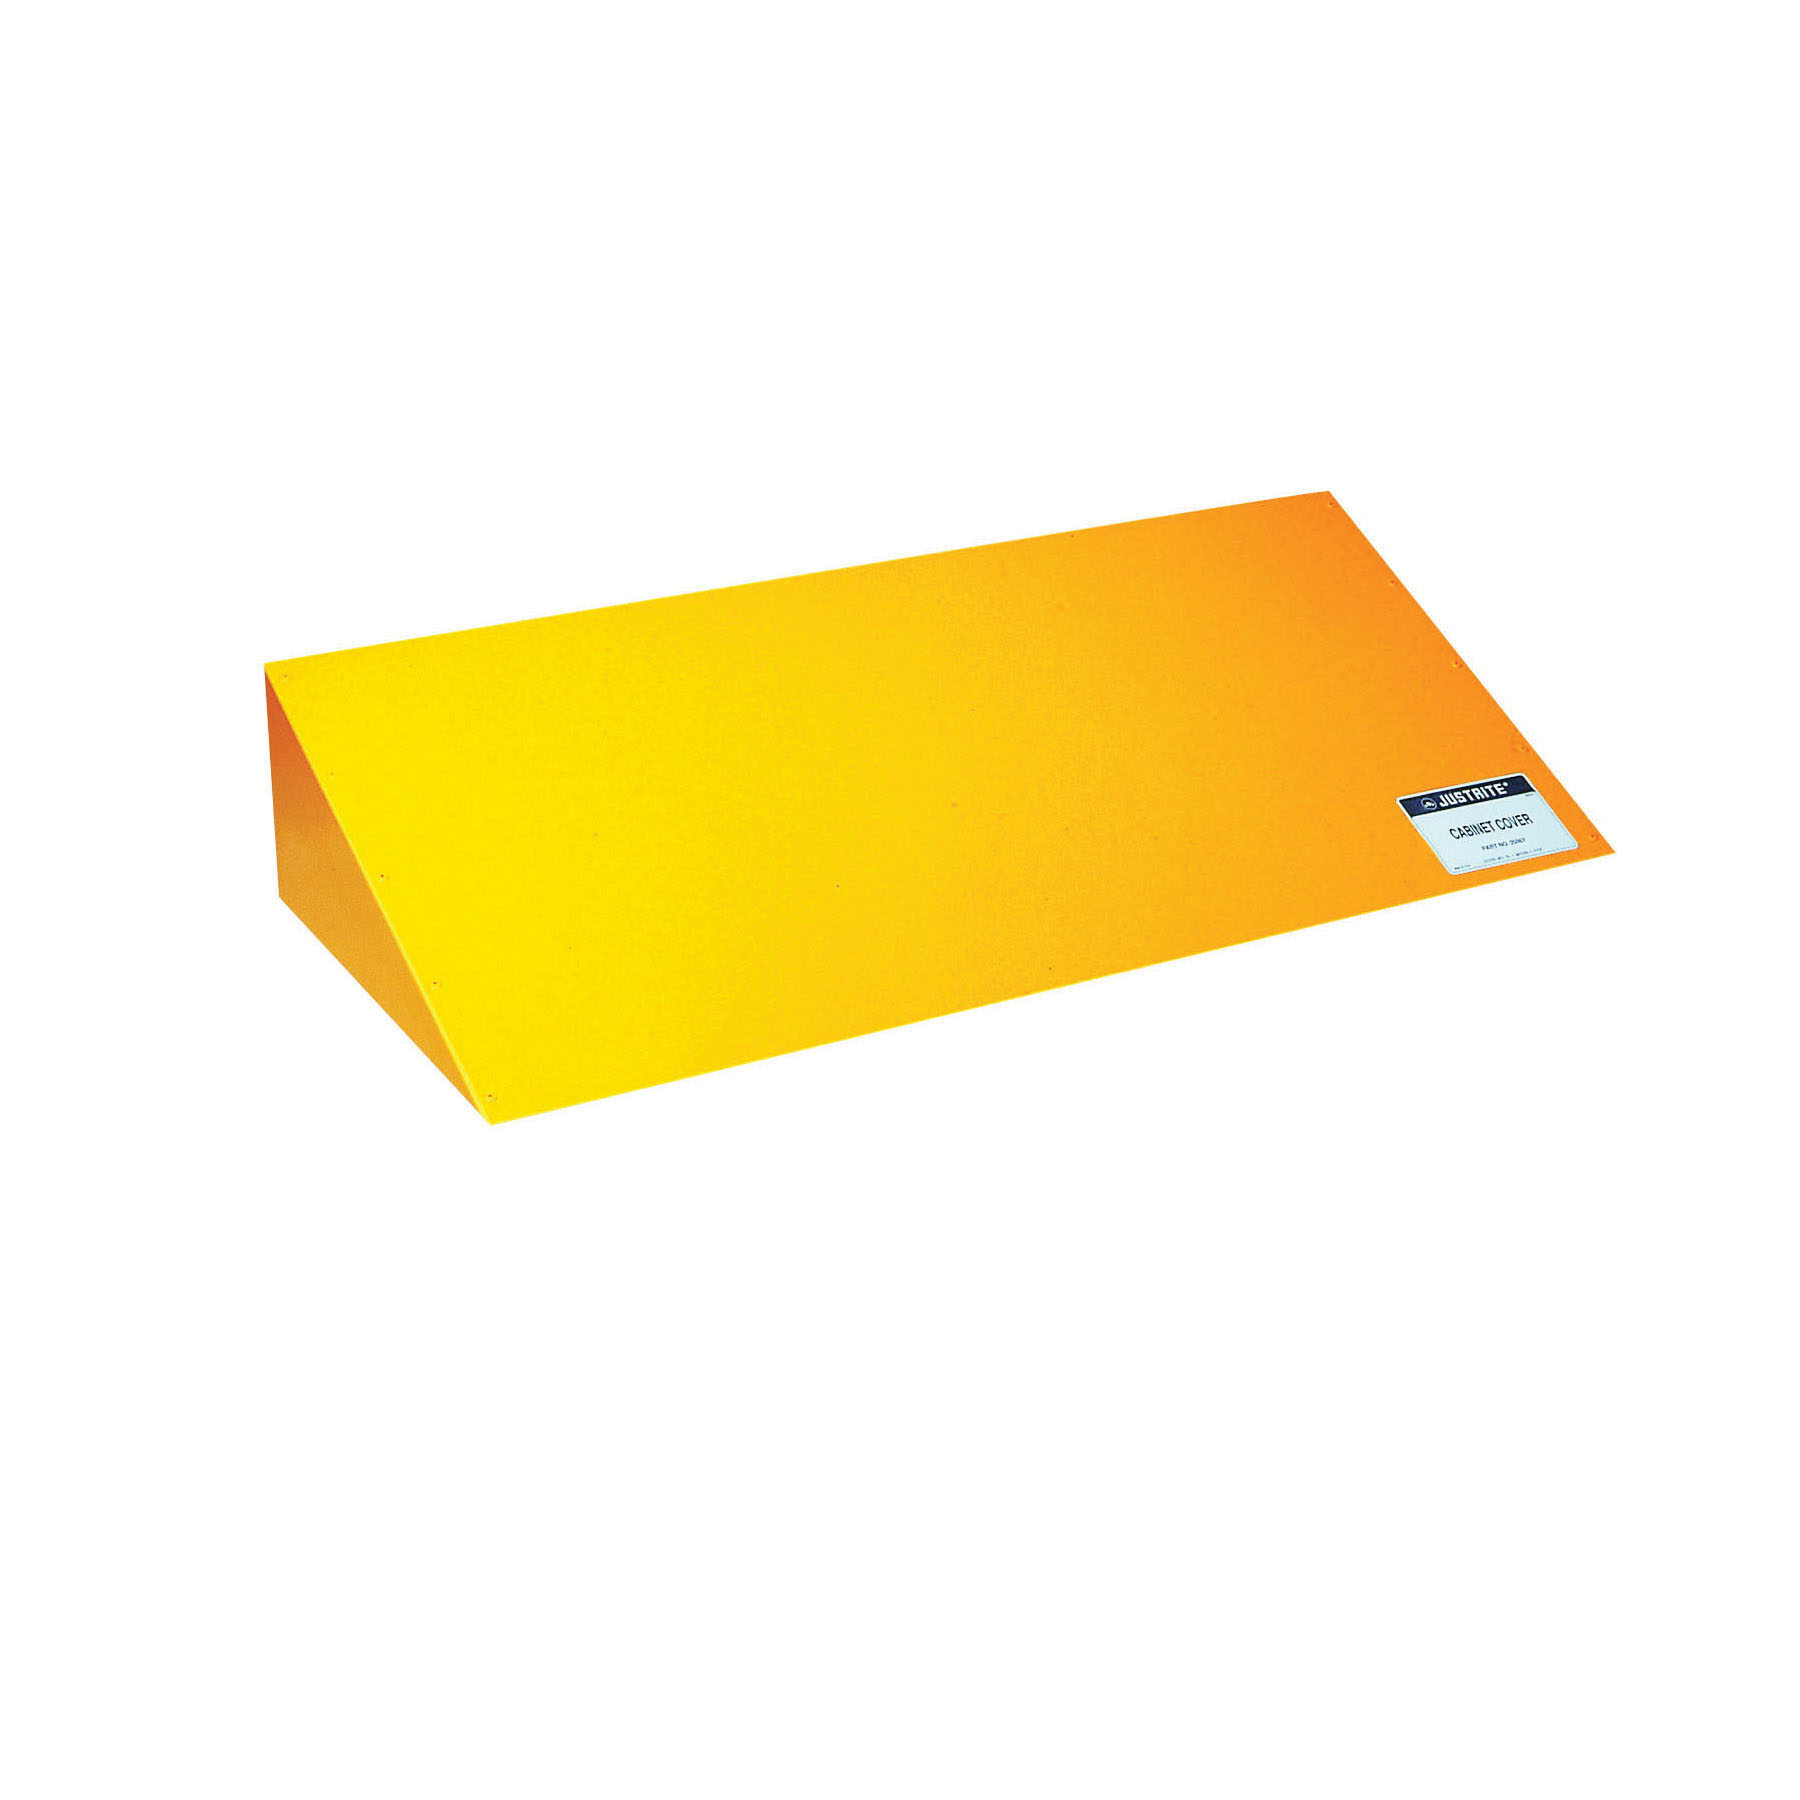 Justrite® 25987 Cabinet Cover, For Use With 12 gal, 17 gal, 30 gal, 40 gal and 45 gal Cabinets, Yellow